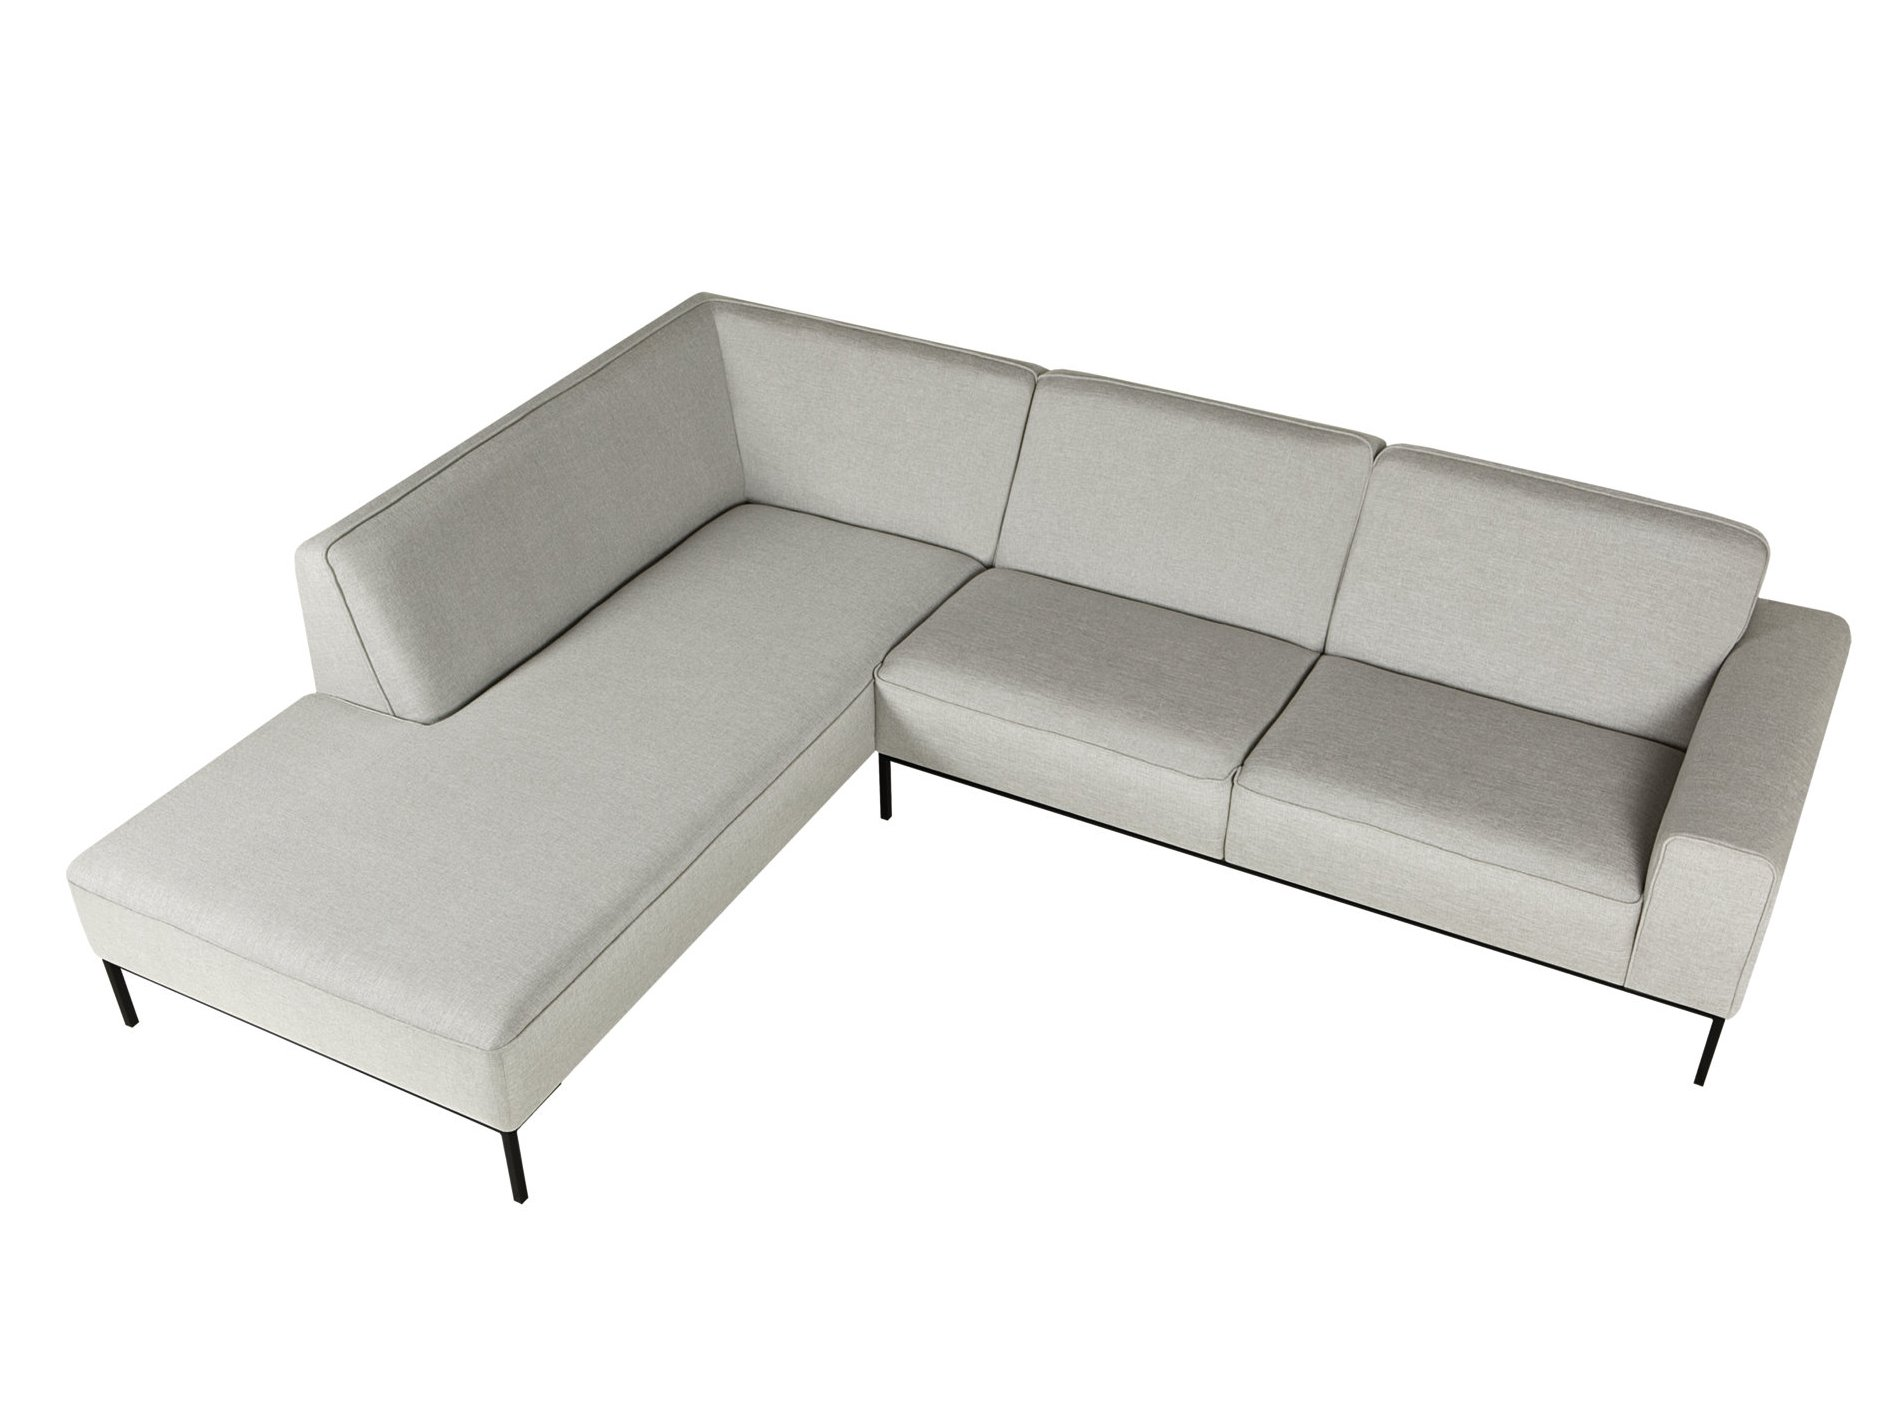 Ville sofa with chaise longue ville collection by sits for Chaise longue sofa